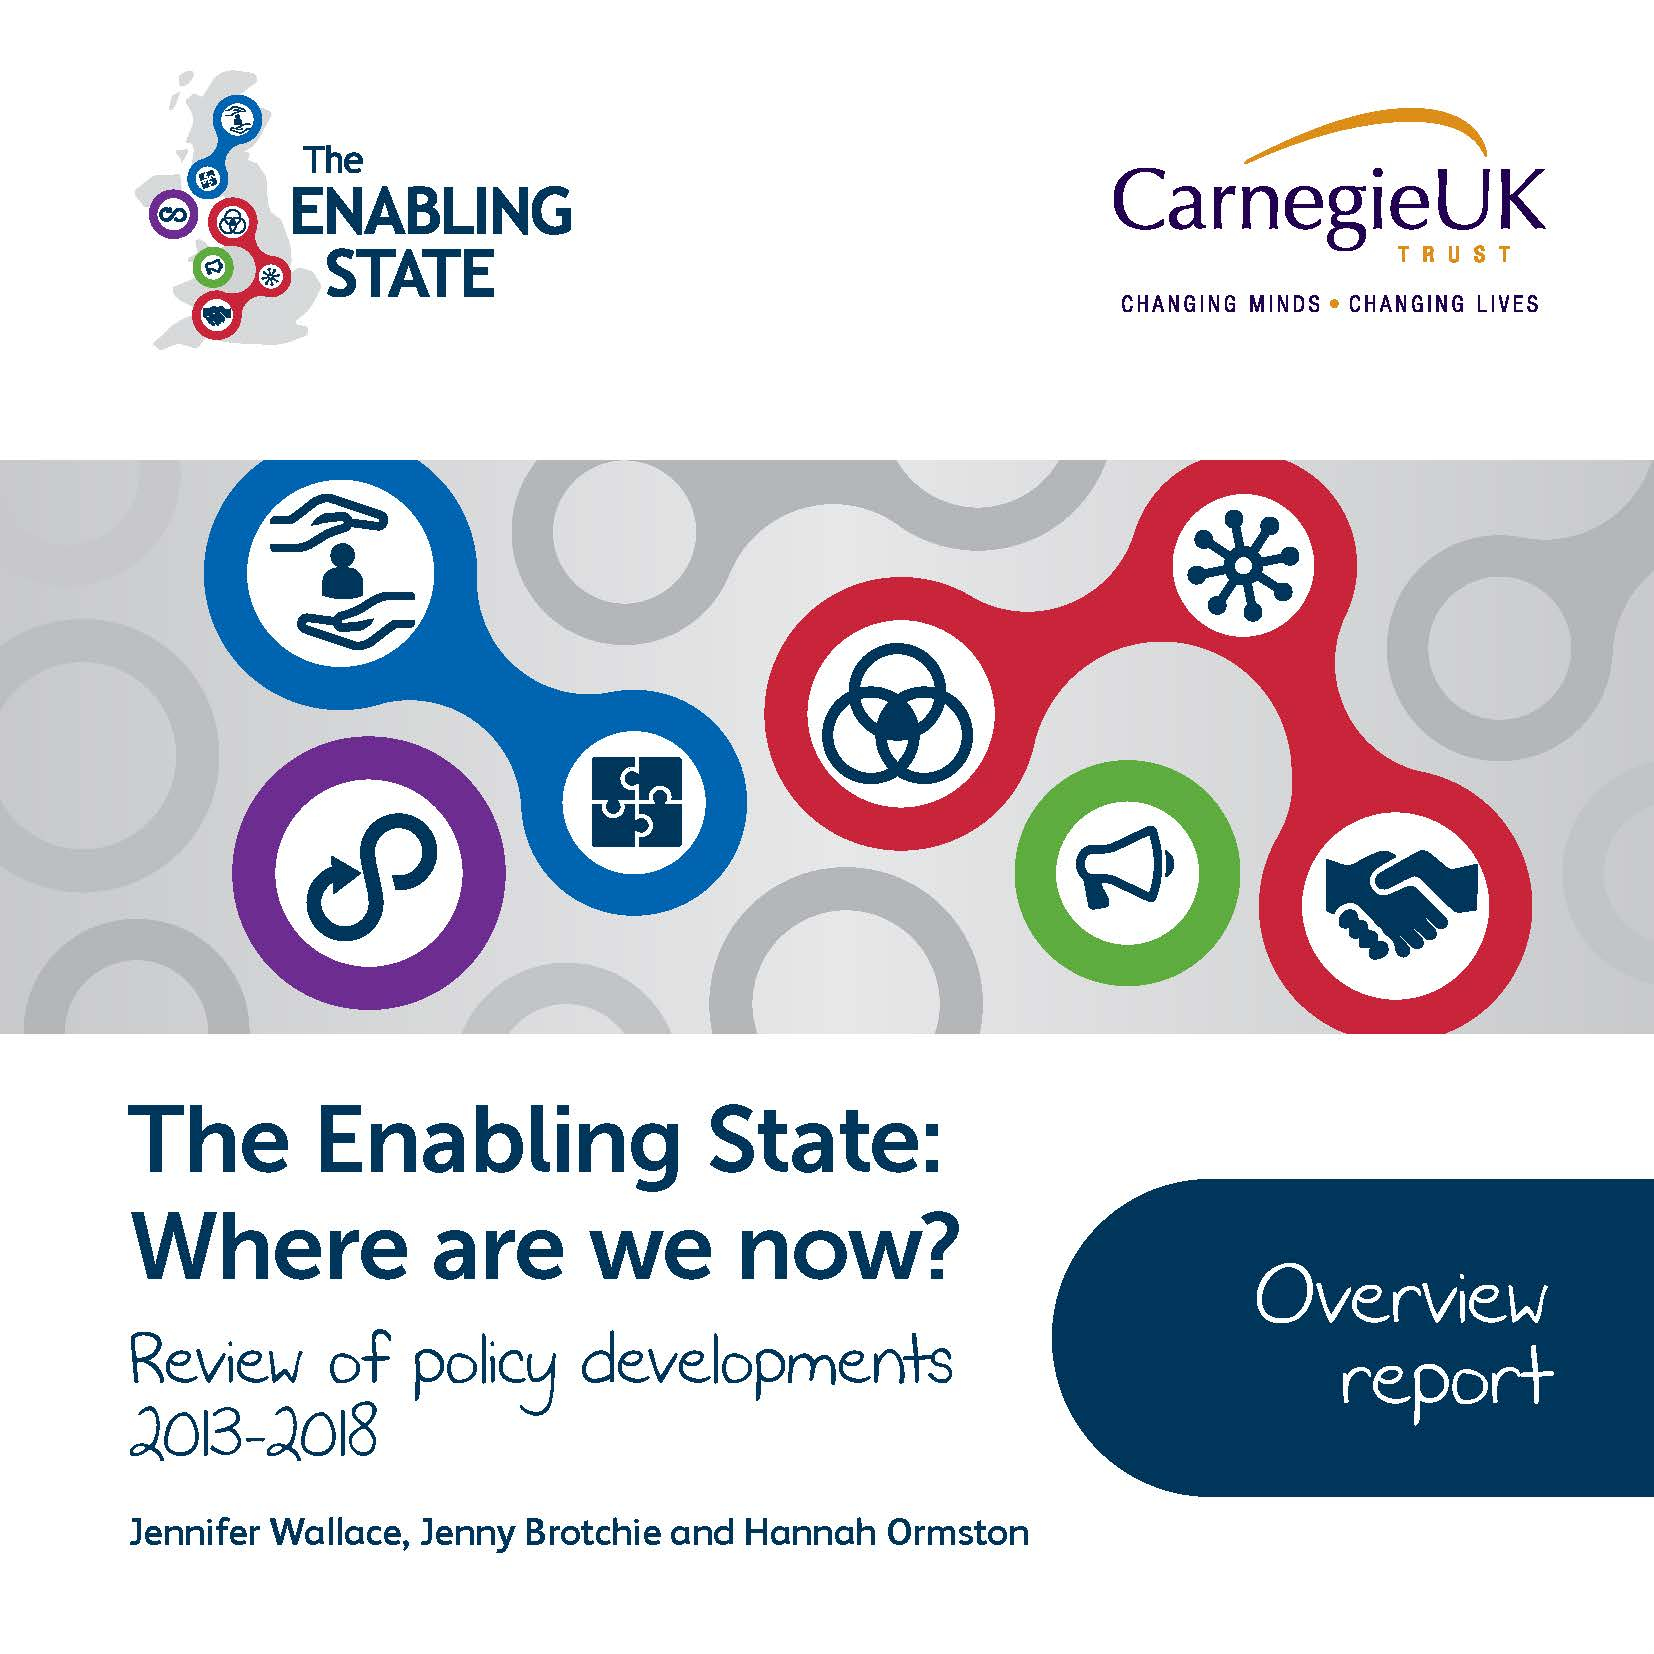 The Enabling State: Where are we now? Review of policy developments 2013-2018  Summary Report